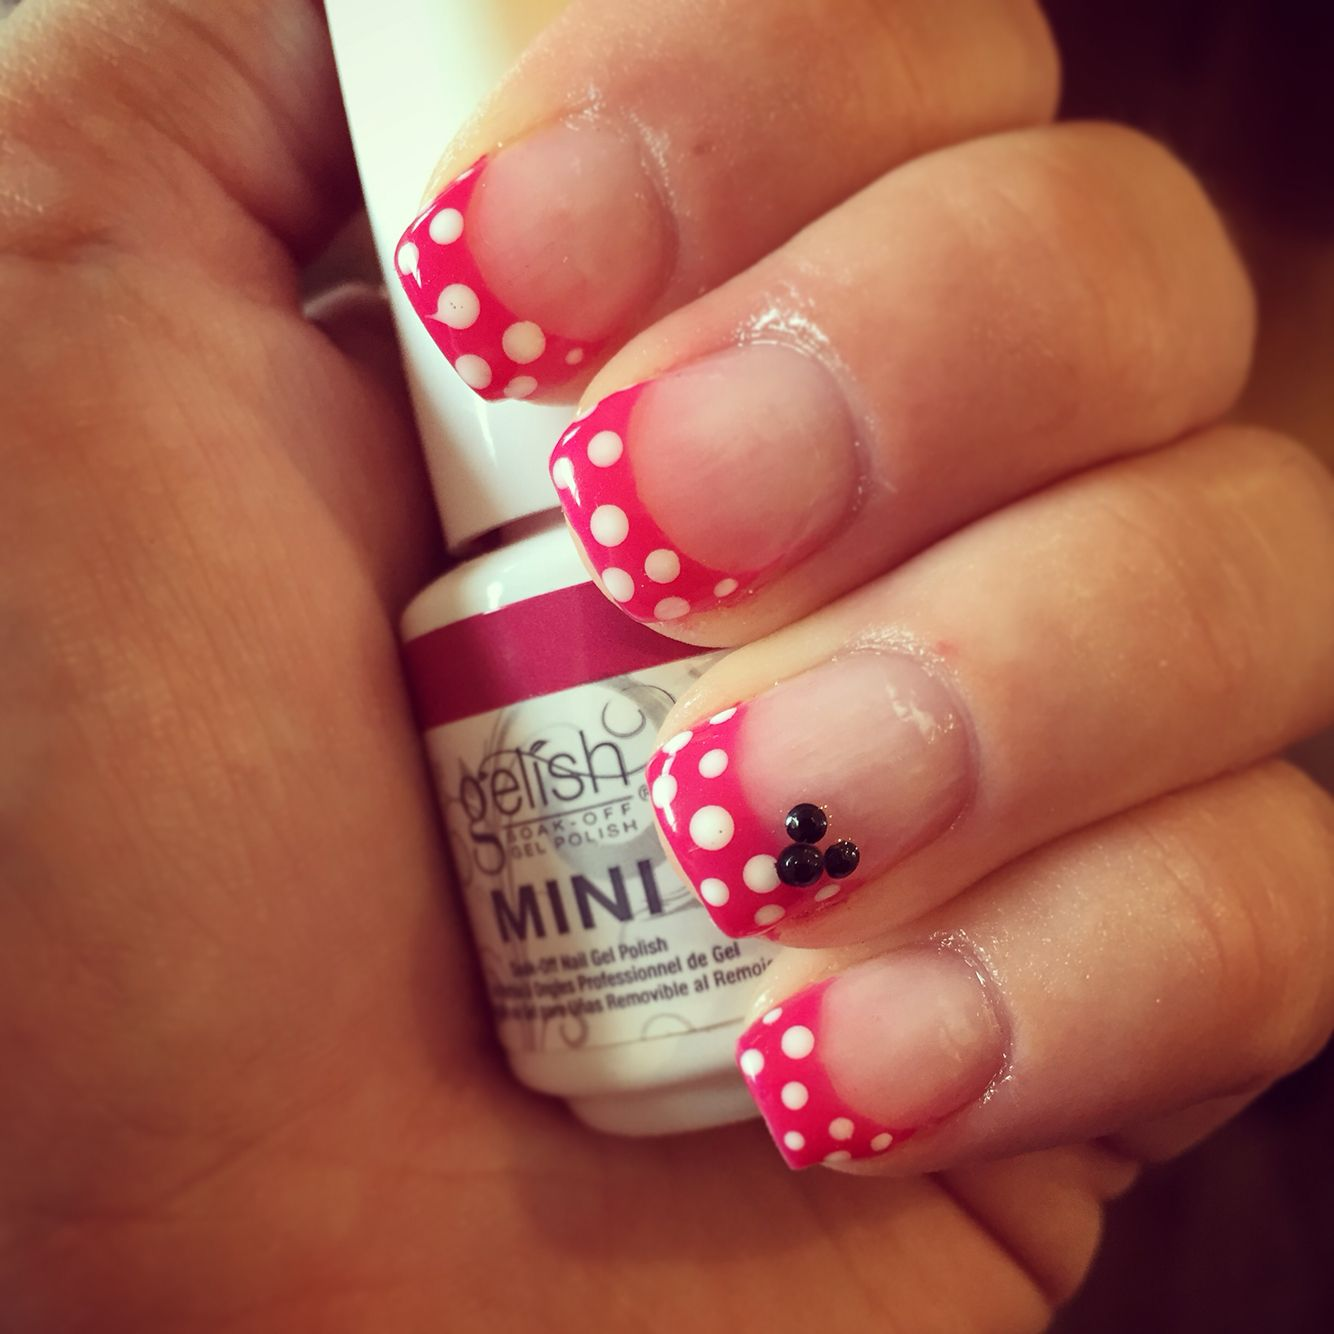 Minnie Mouse gel nails   My Nails!   Pinterest